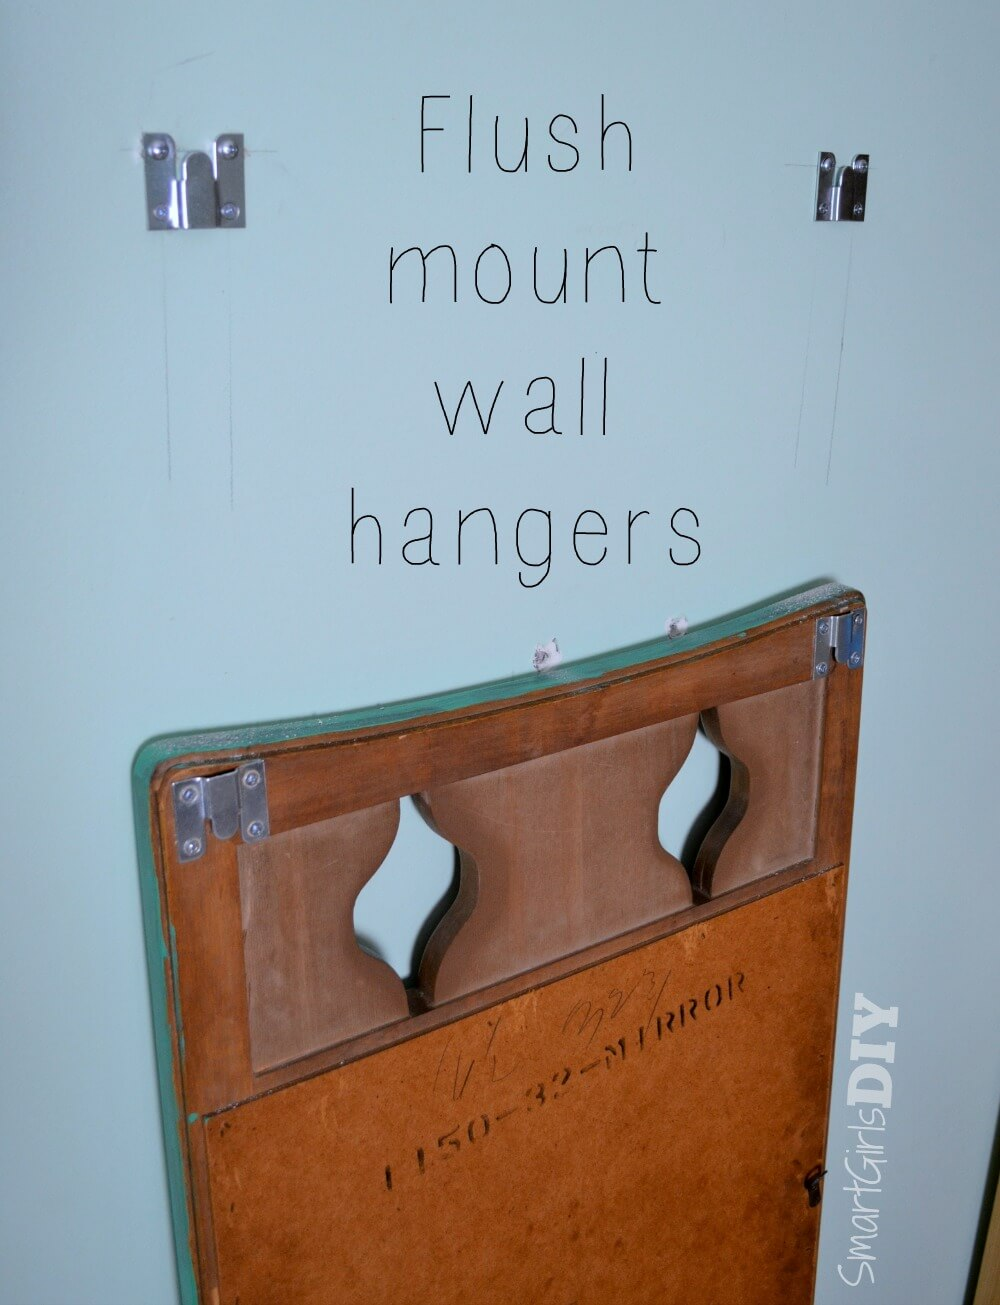 Flush mount wall hangers